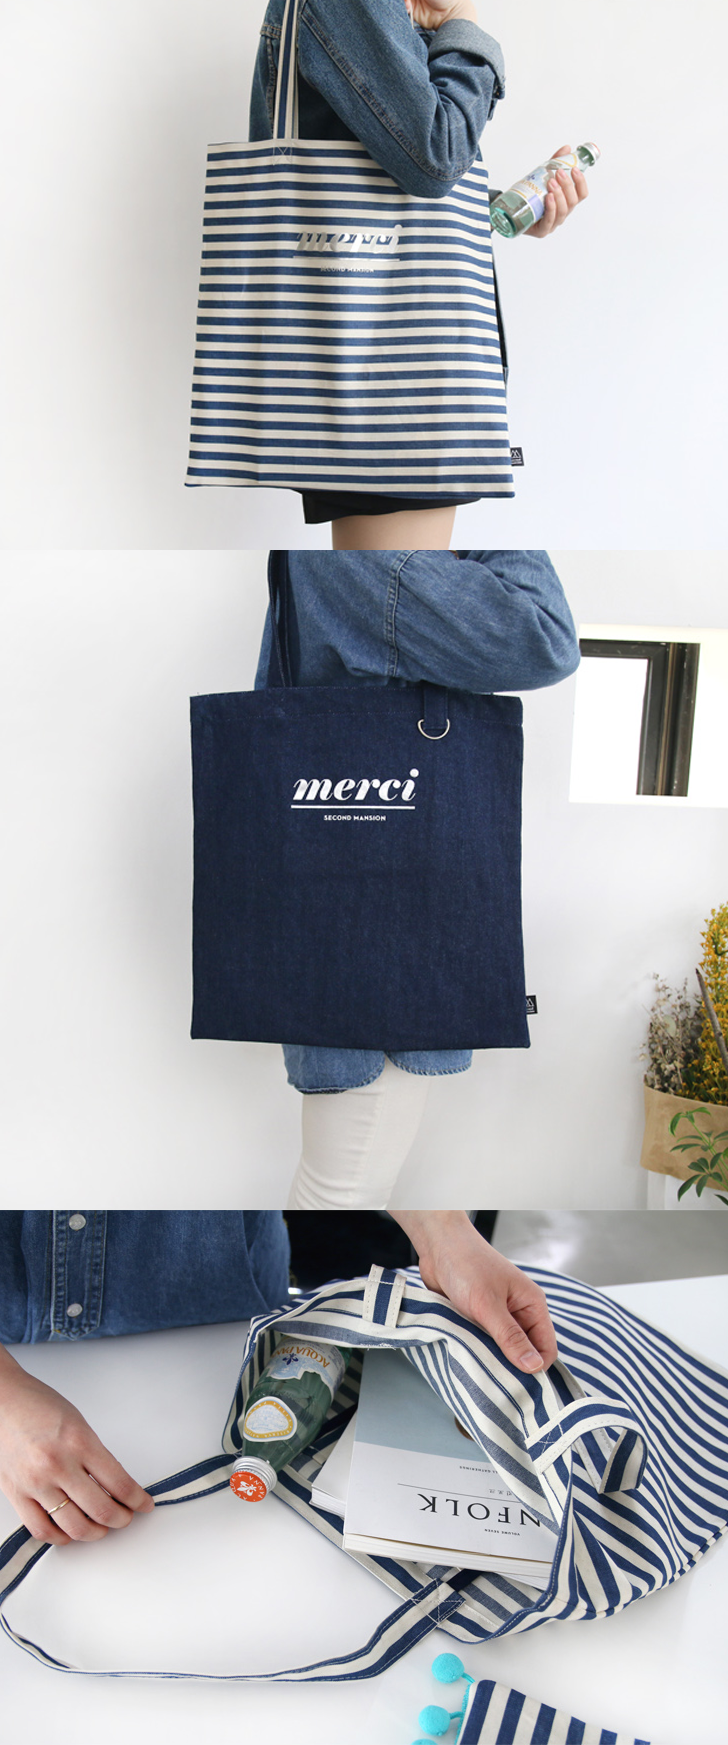 Shoulder bags can be fashionable like you too! Take the Merci Eco Shoulder Bag with you on the go and wherever you venture!